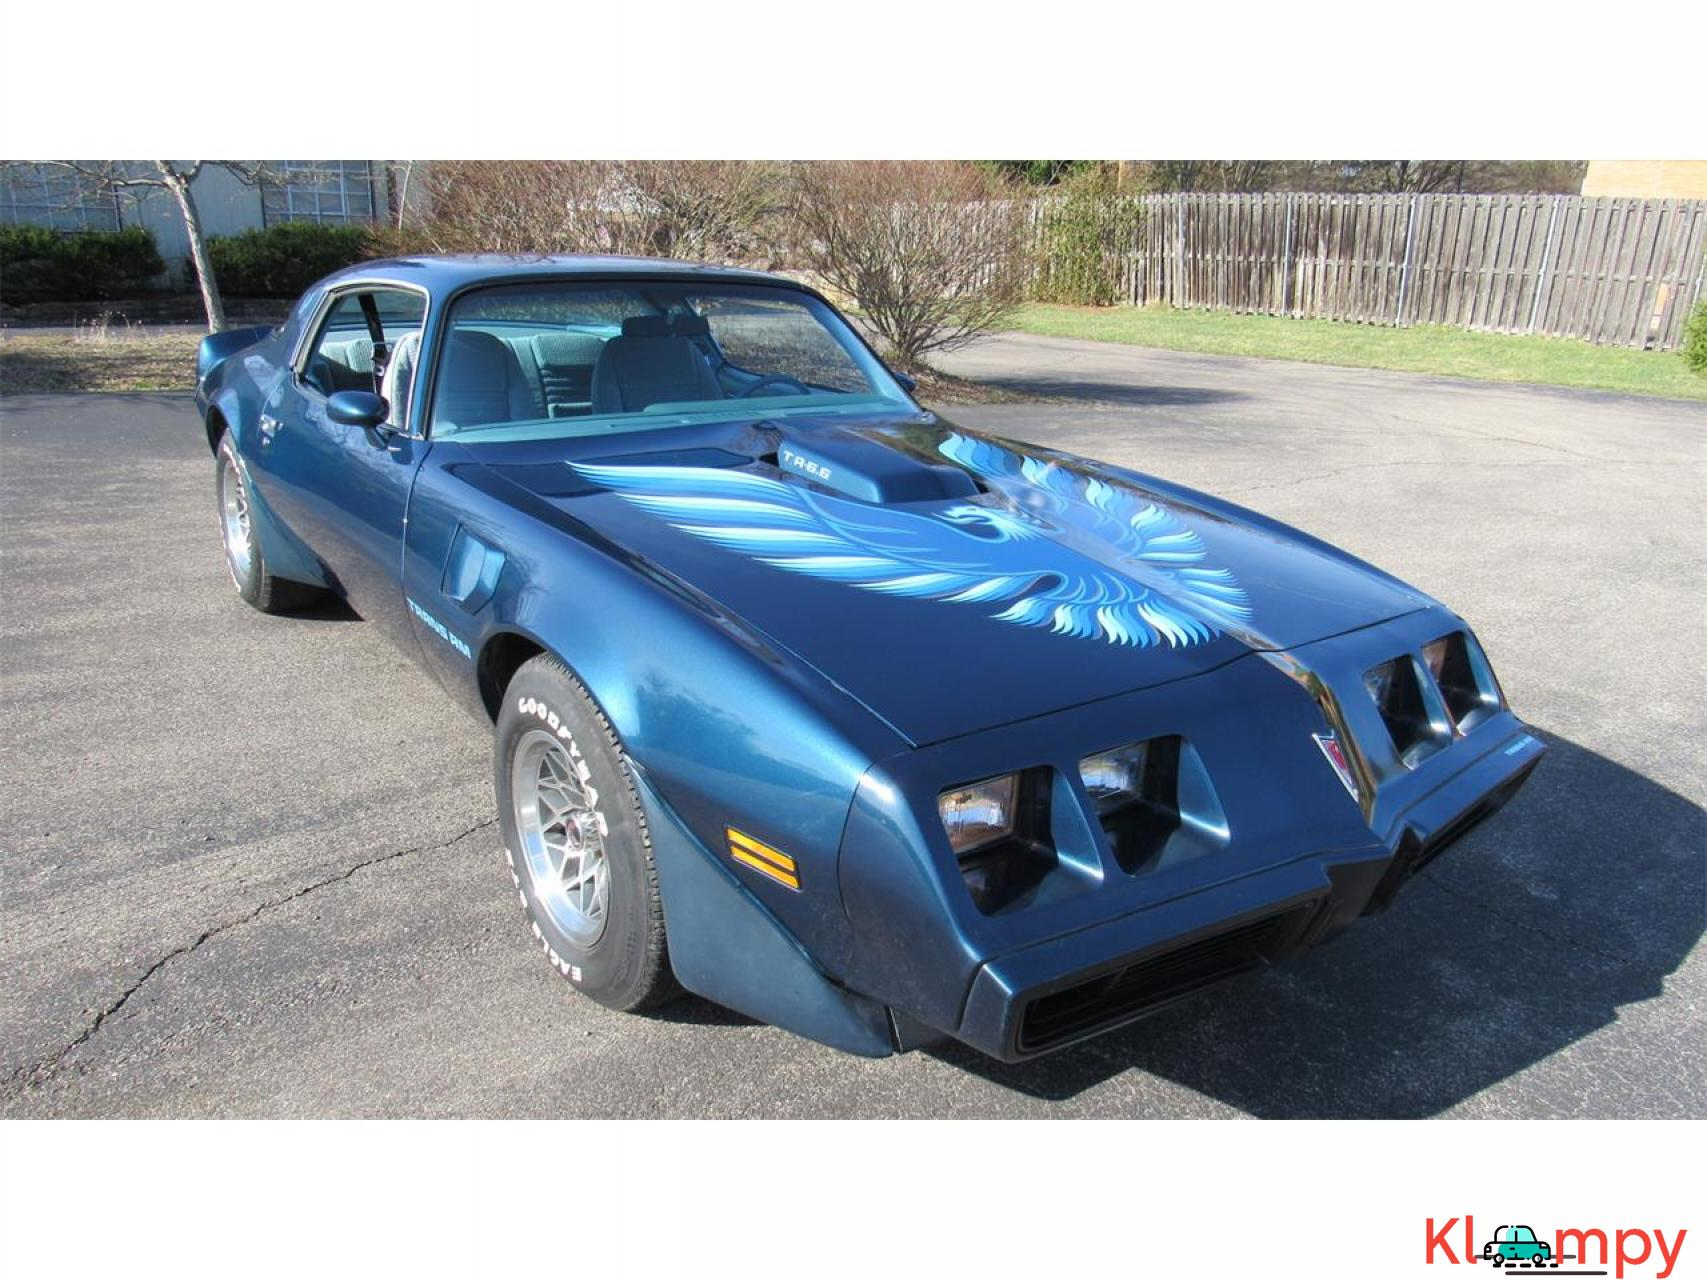 1979 Pontiac Firebird Trans Am 400 engine Original - 4/20